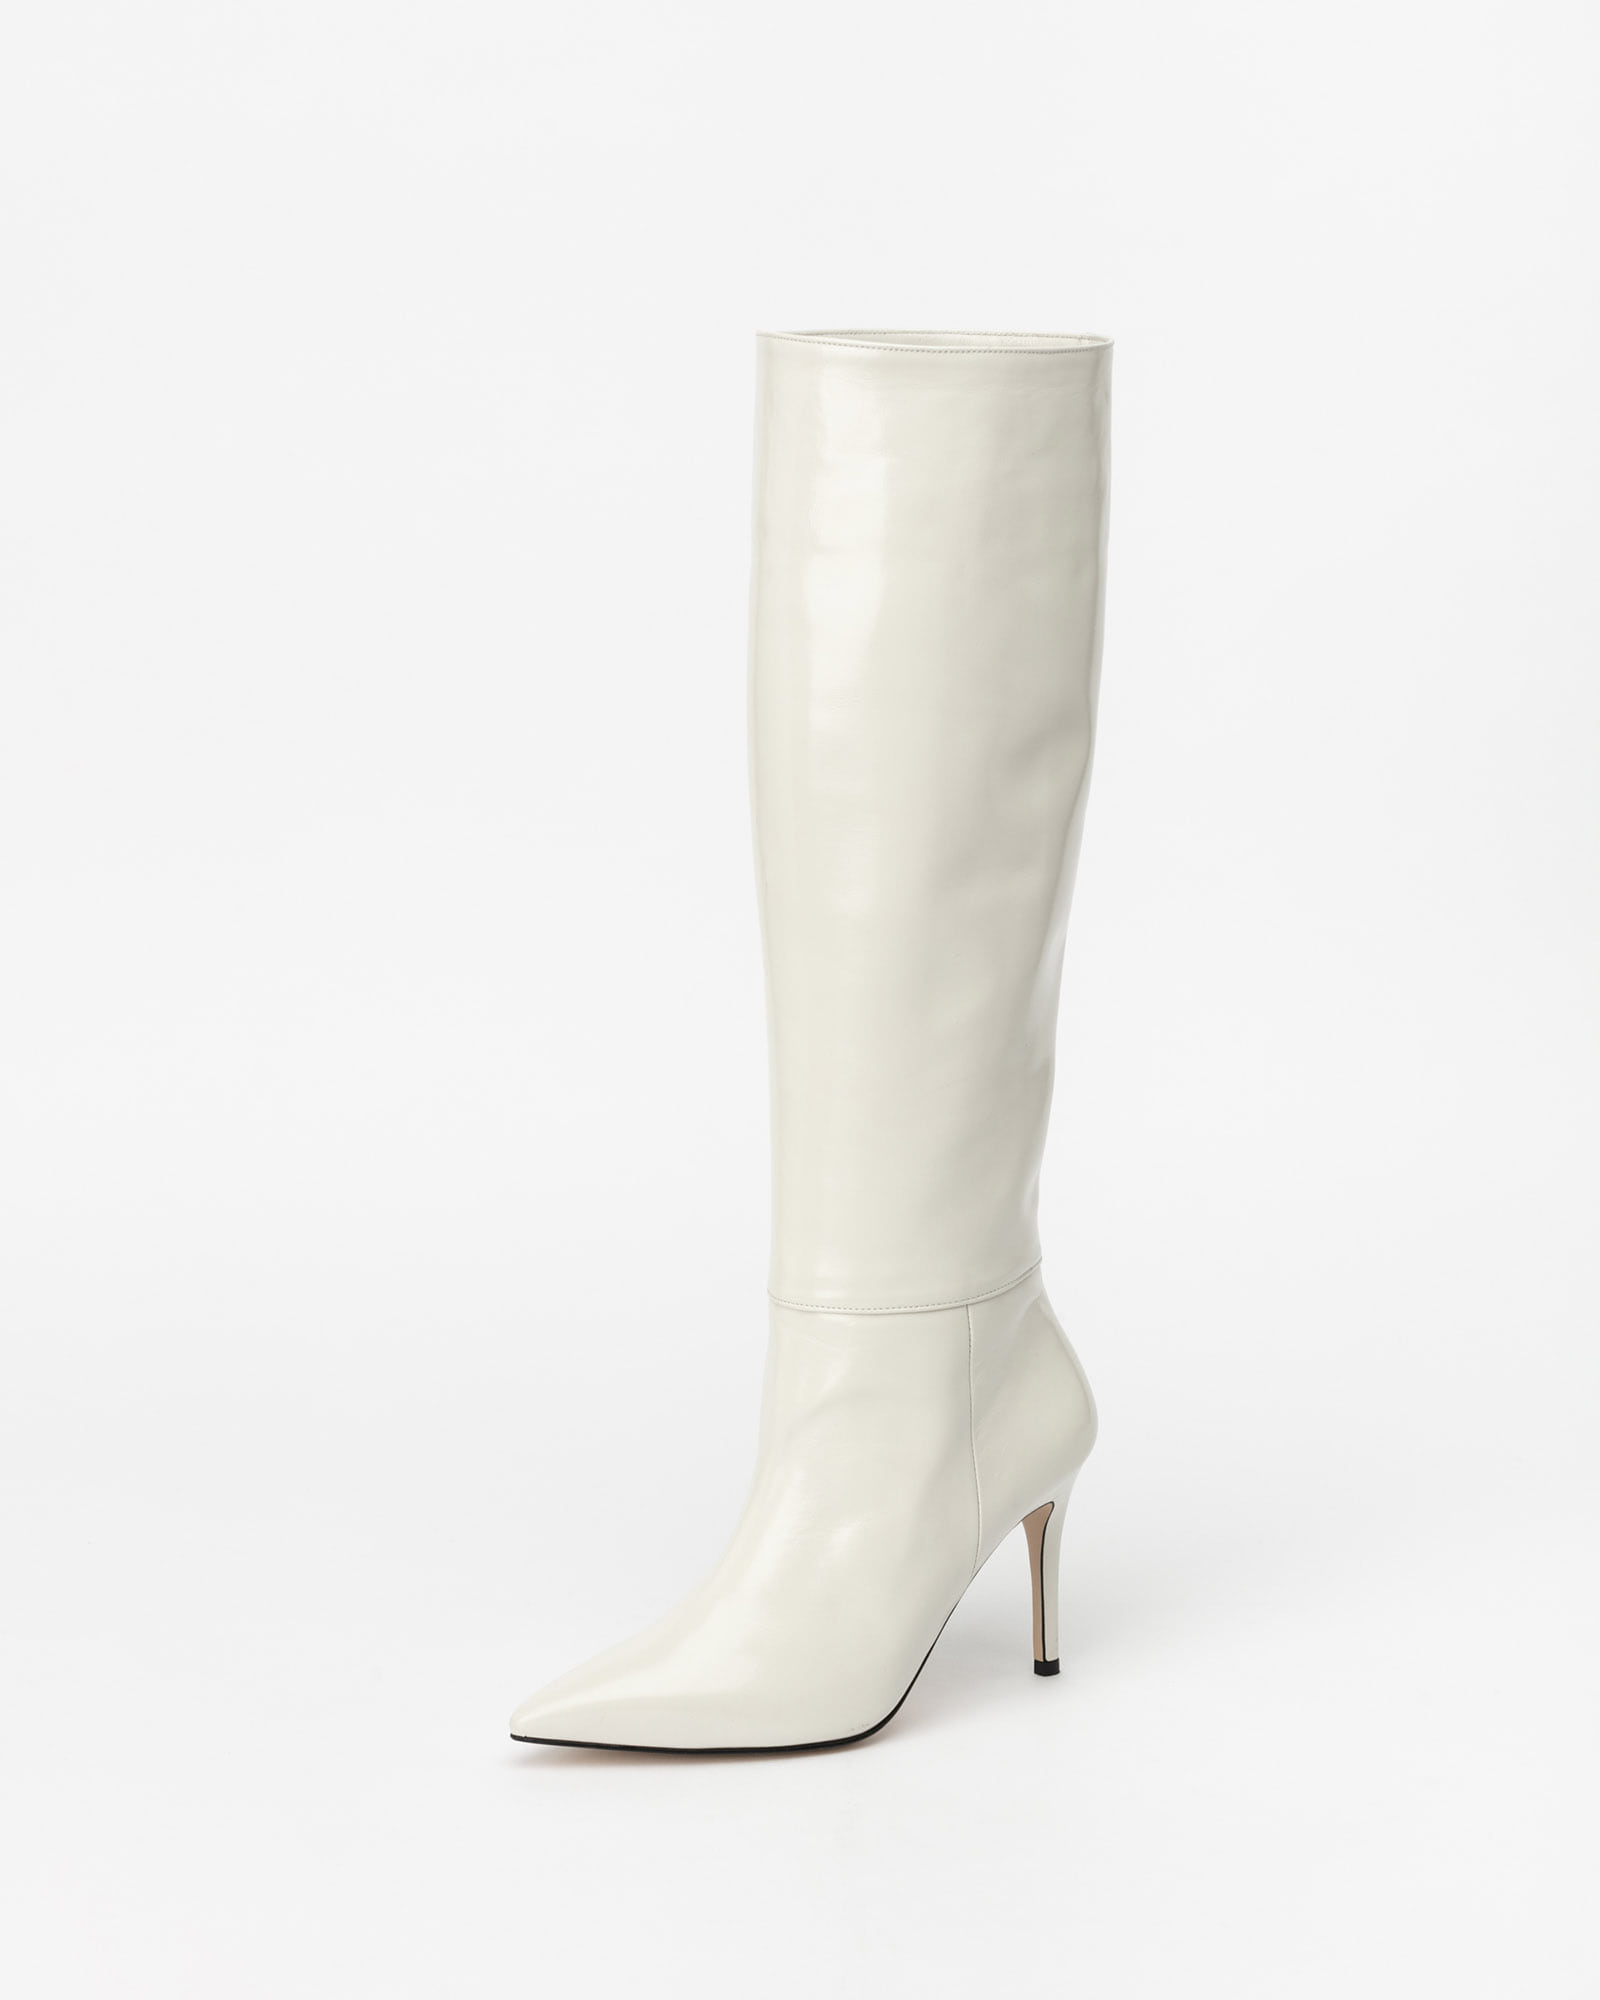 Lyrique Soft Boots in Textured Ivory